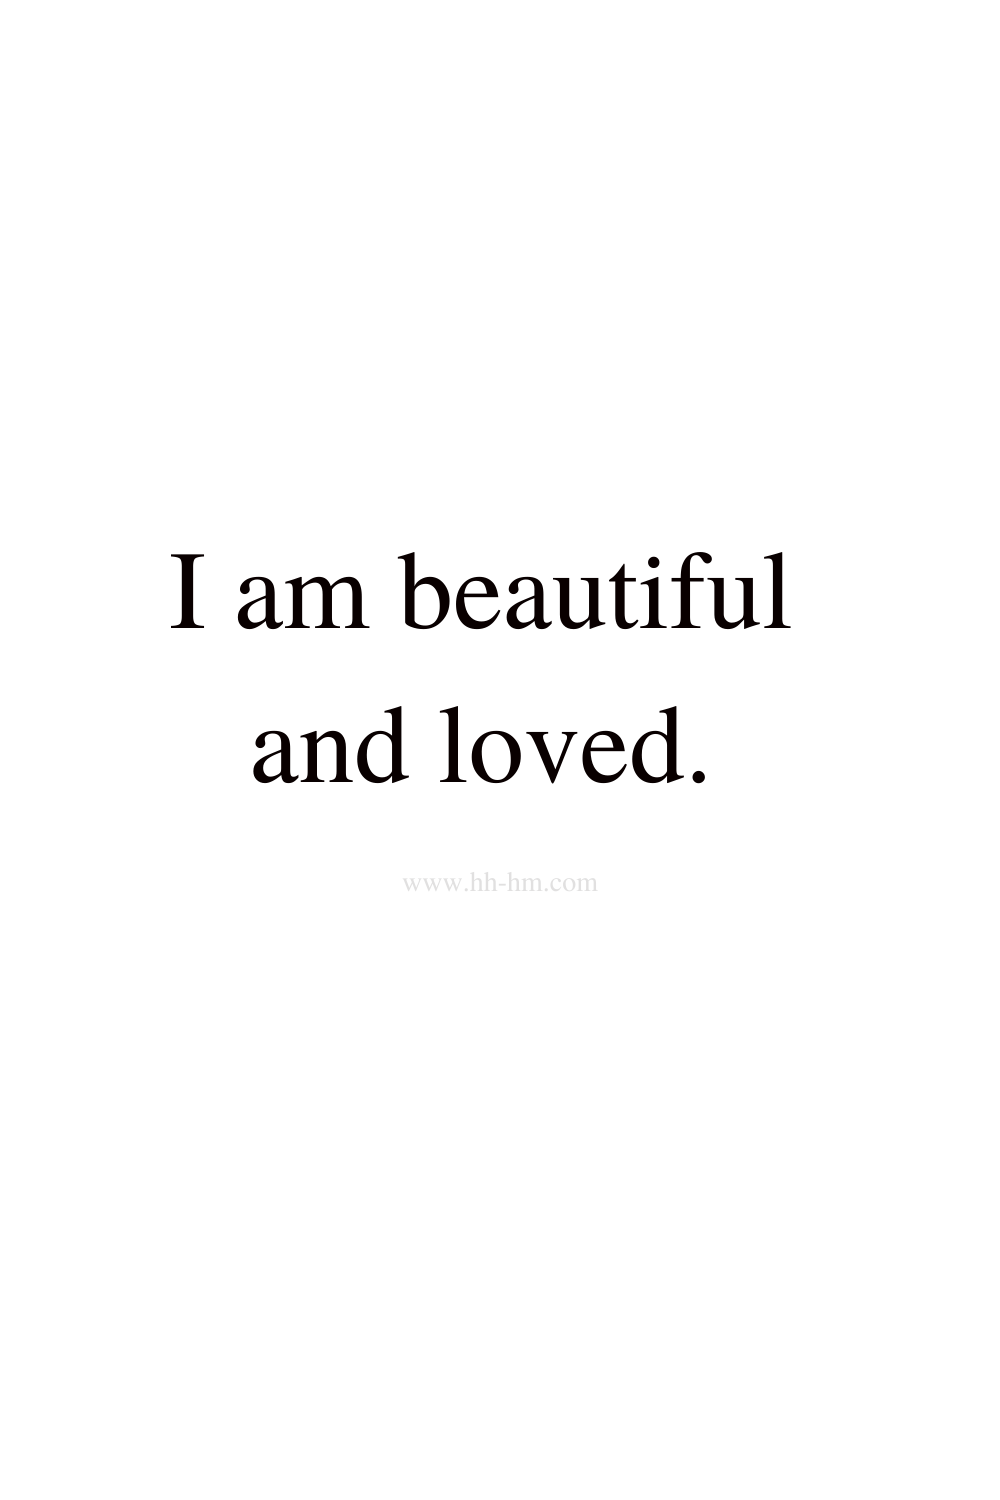 I am beautiful and love - self love and self confidence morning affirmations